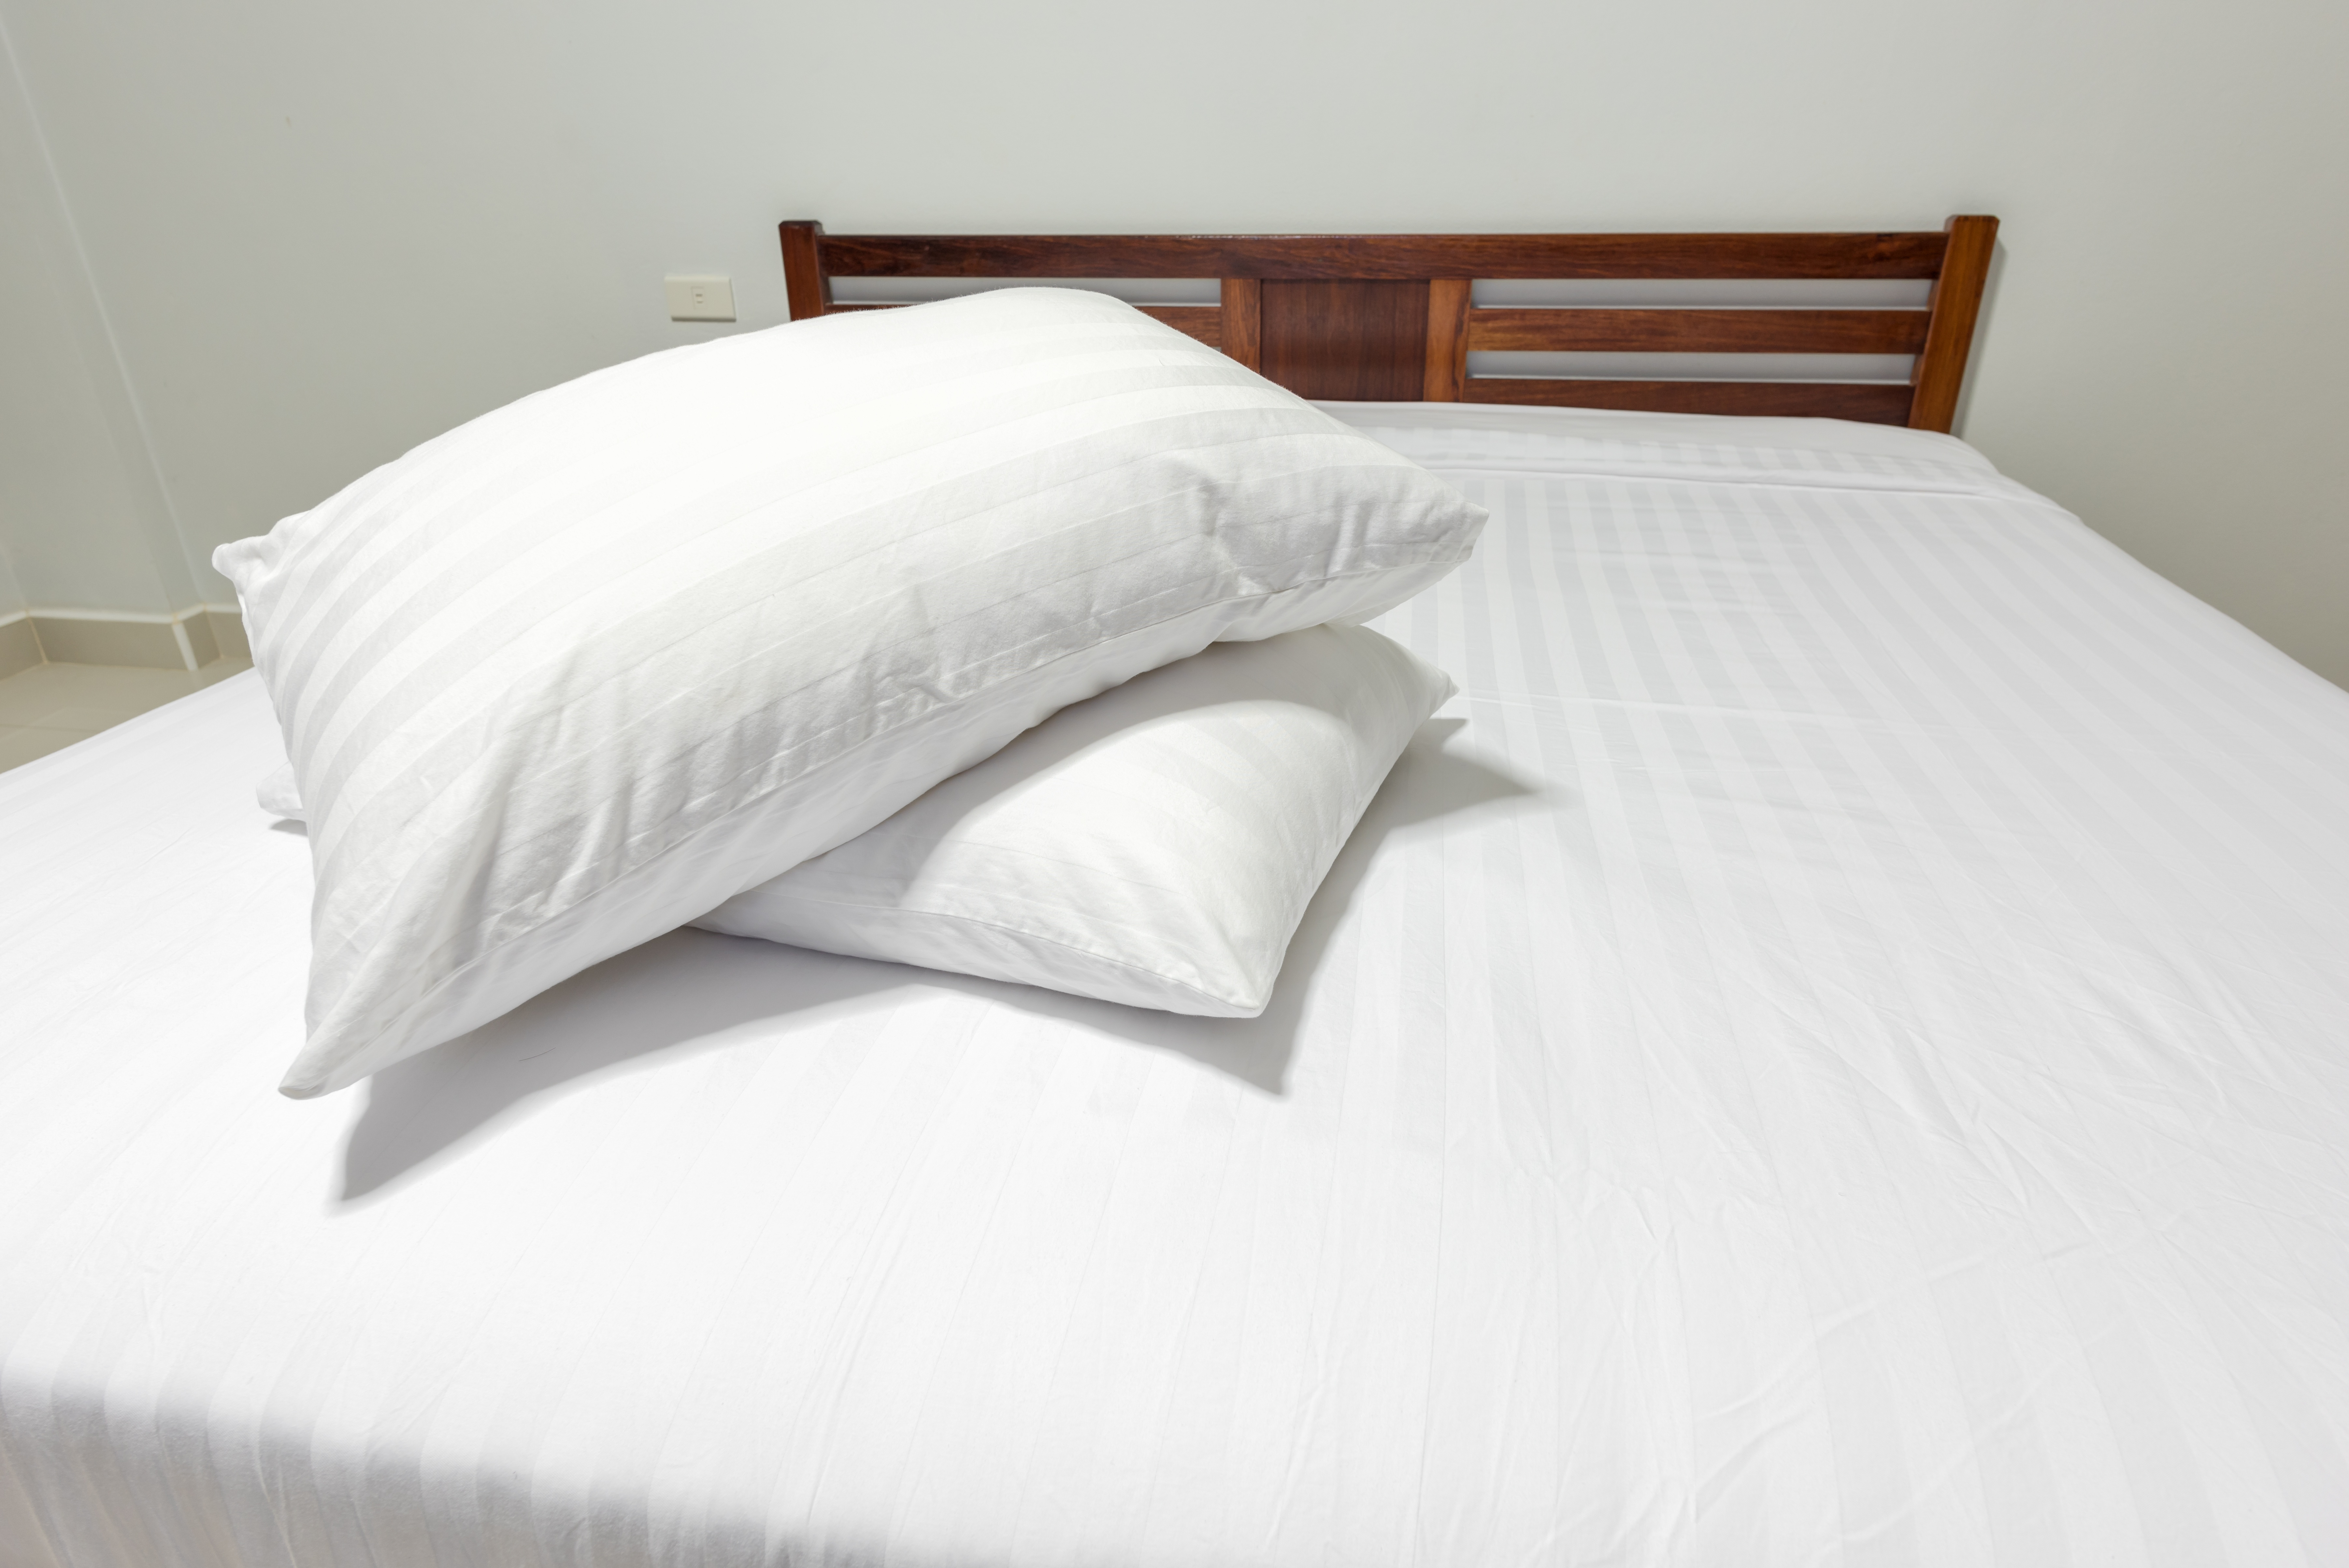 Wide Selection & Great Deals at our Sarasota Mattress Store: Memory foam, Adjustable Bed & More